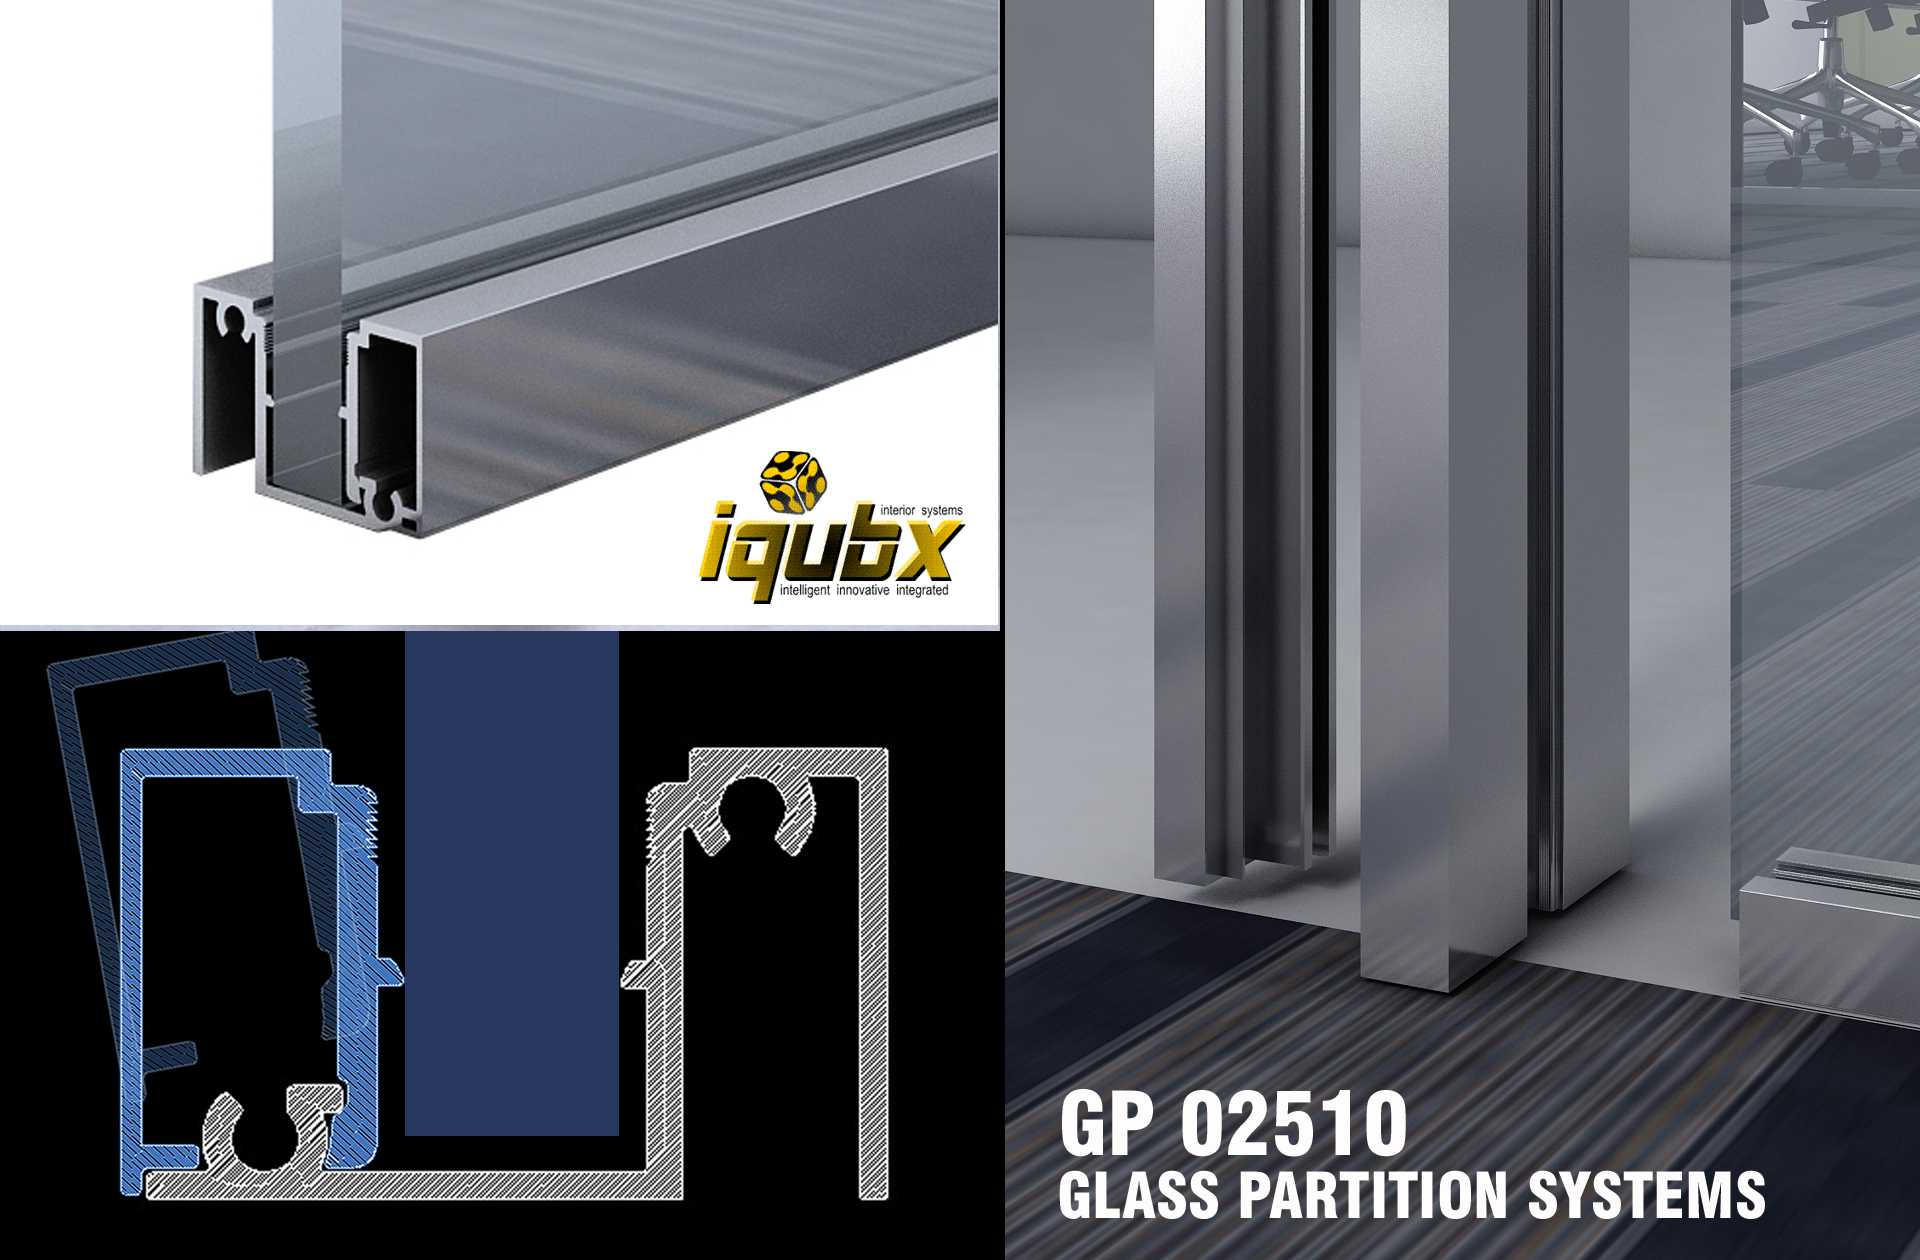 iqubx gp250 glass partition are modular and can be erected very easily to give elegant interiors